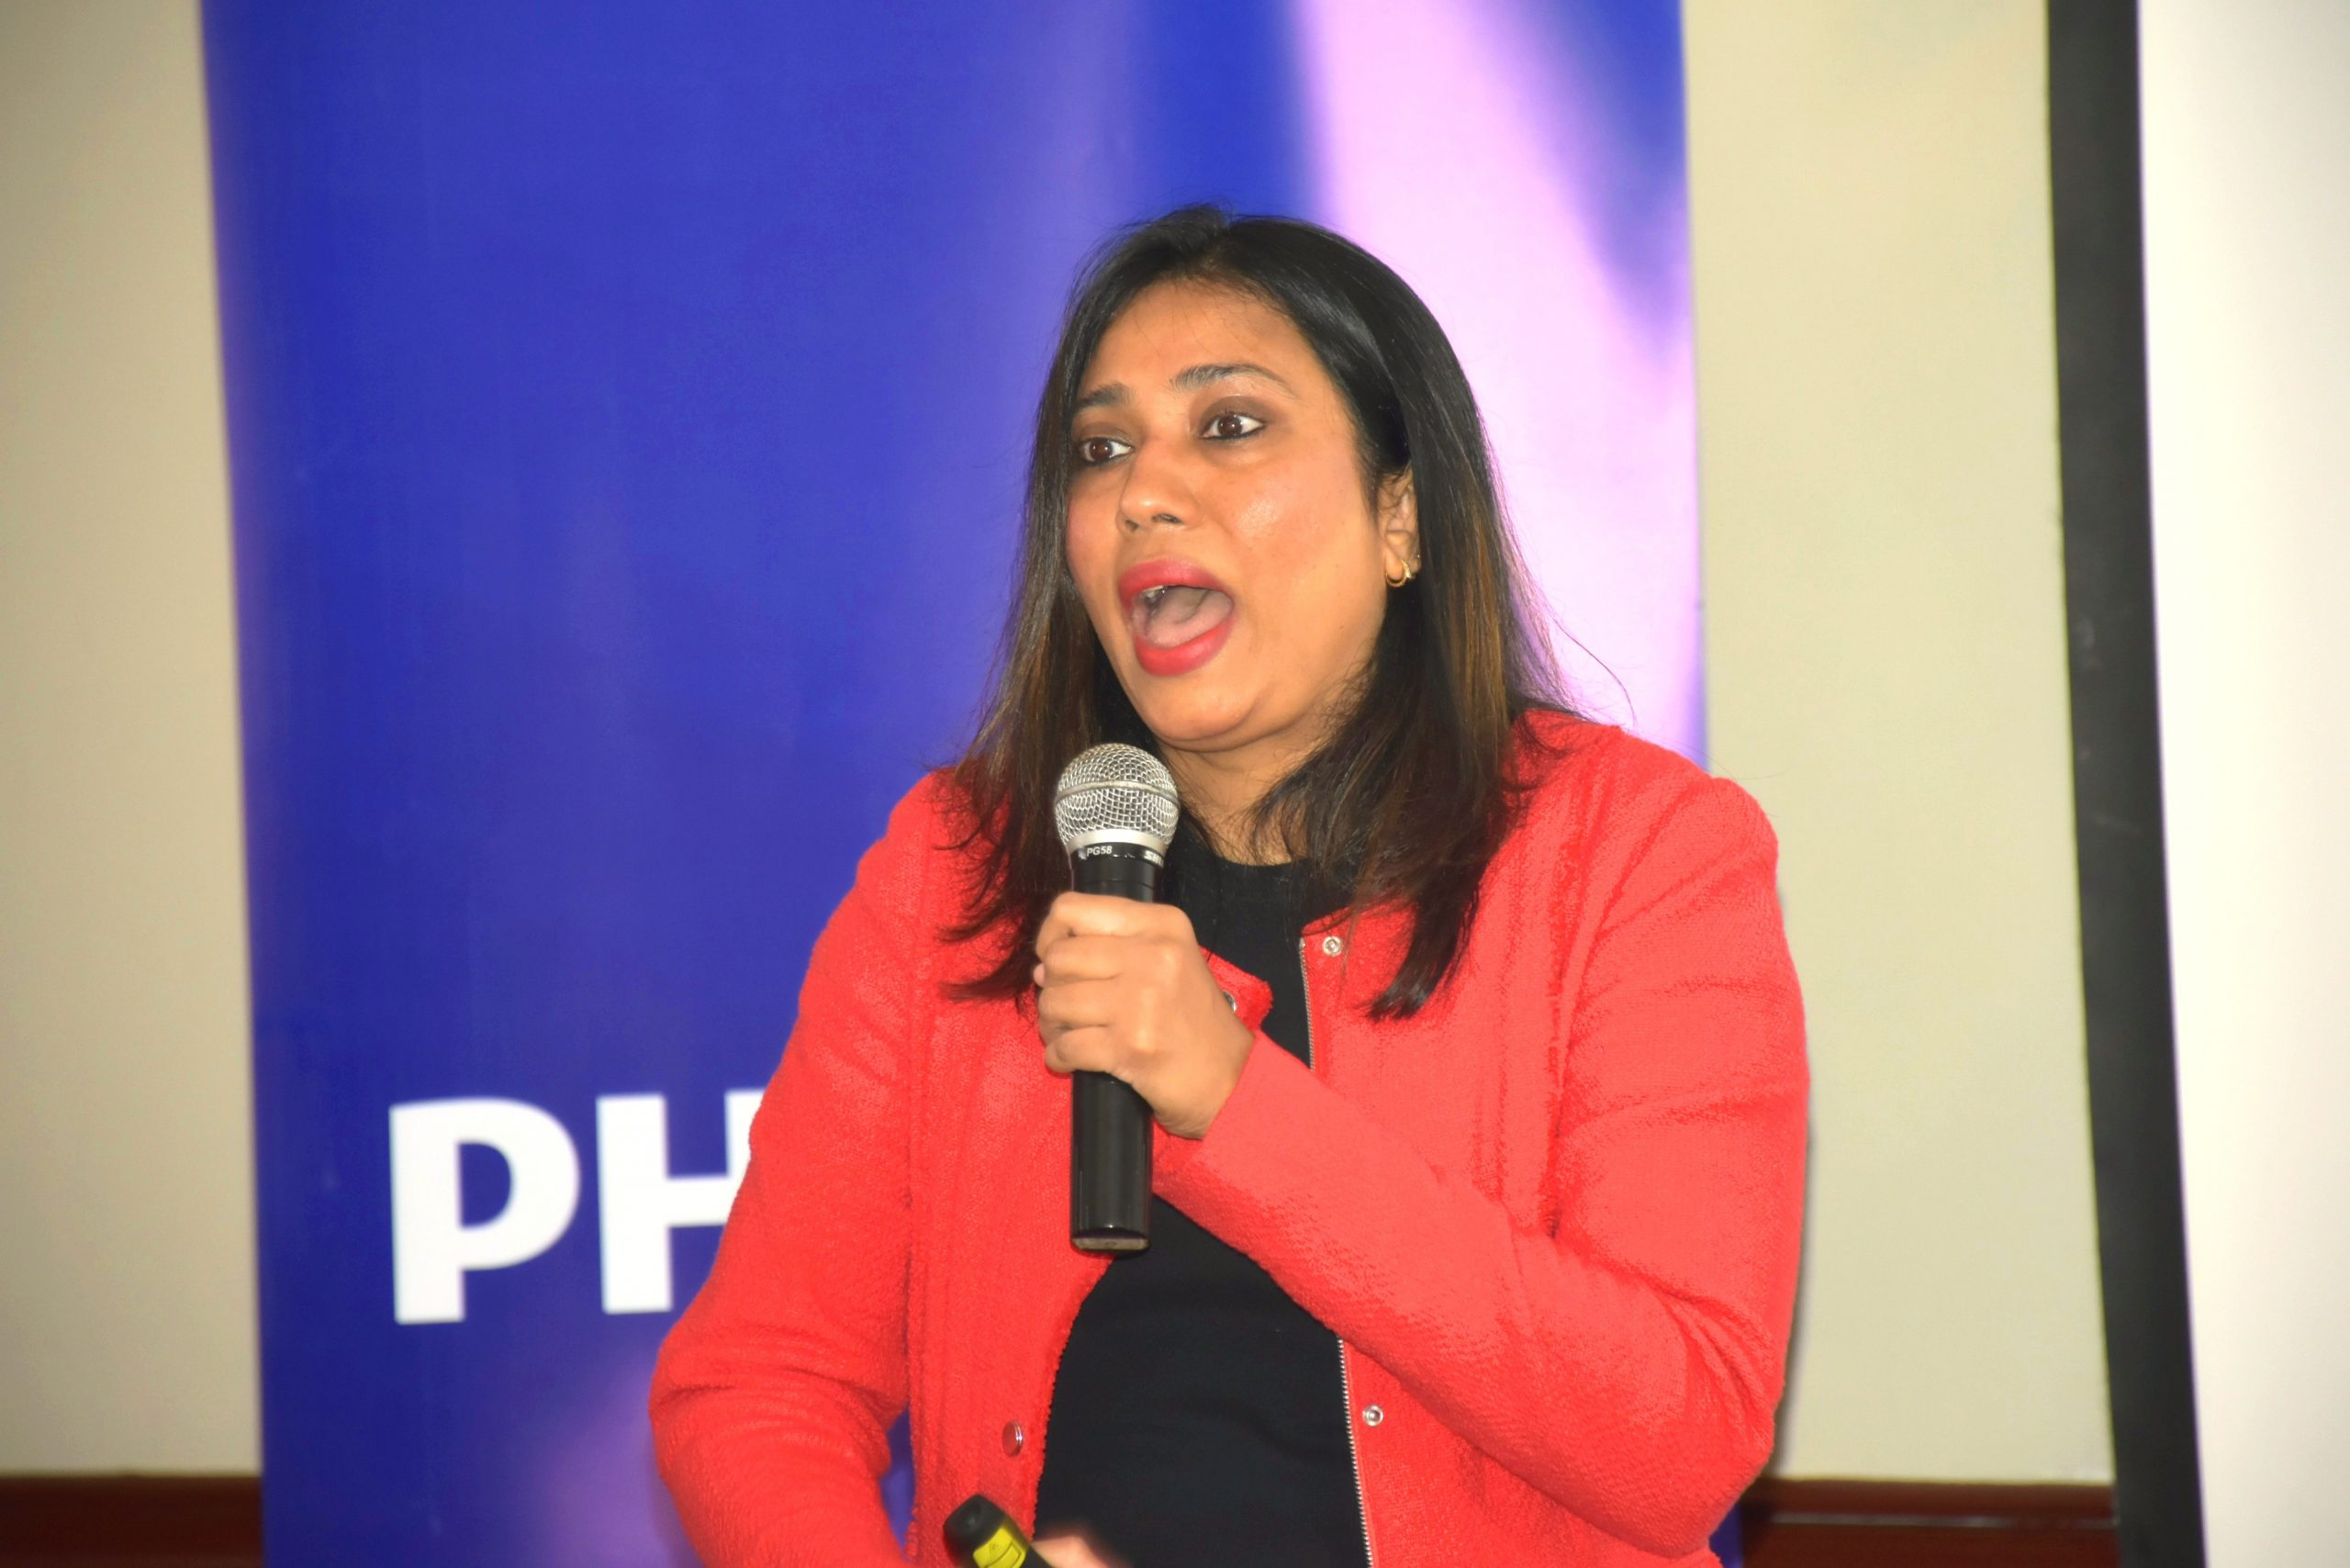 Radhika Choksey, Head of Brand, Communications and Digital Philips Africa addressing journalists in Nairobi www.businesstoday.co.ke